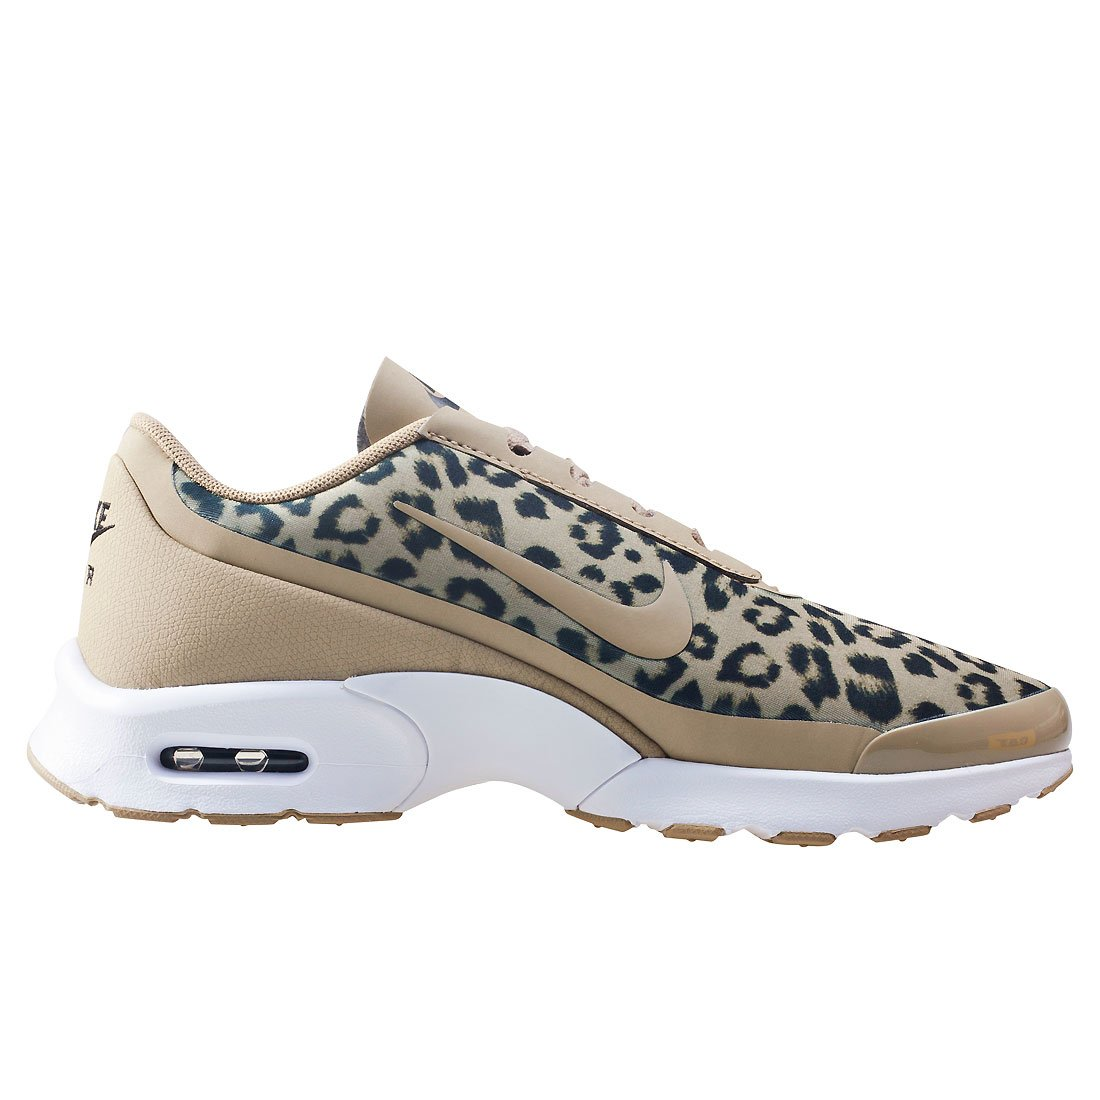 f72b8232fca2 Nike Air Max Jewell Print Womens Trainers Leopard - 4.5 UK: Amazon.co.uk: Shoes  & Bags